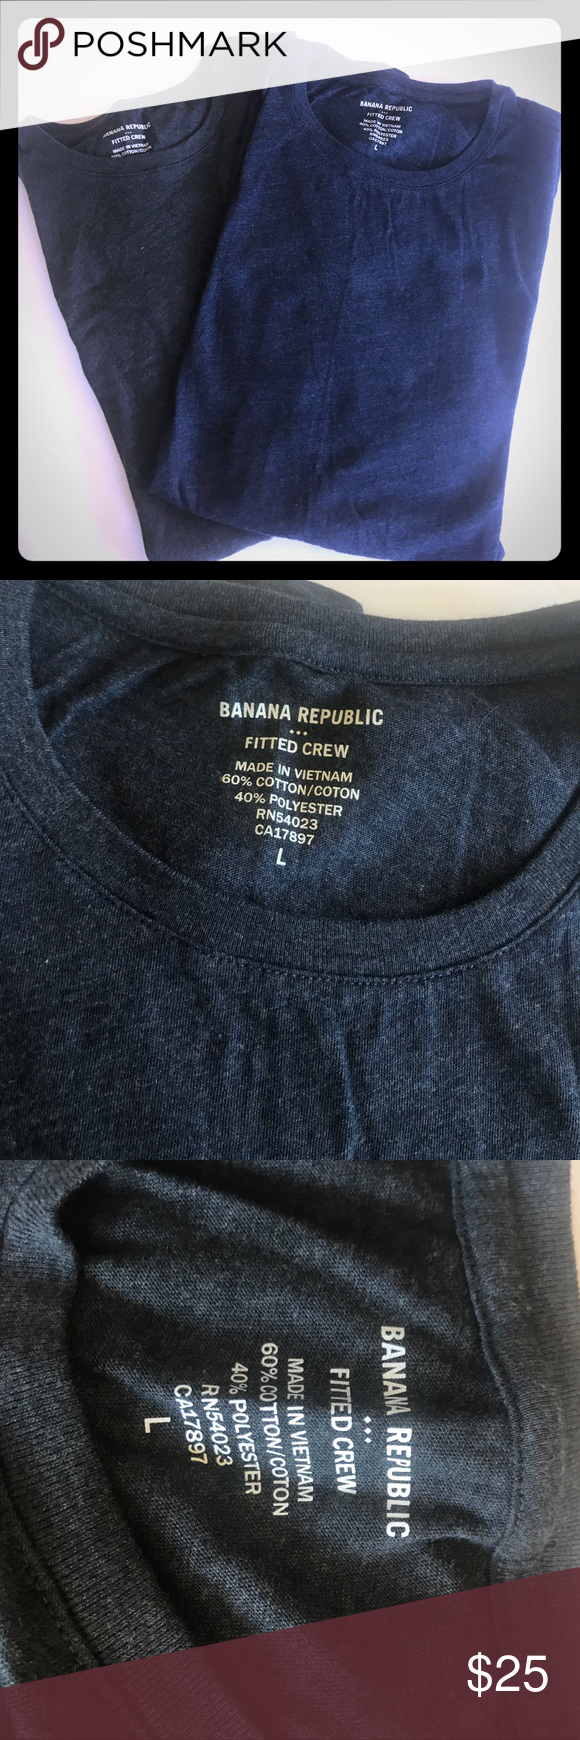 Banana Republic 2 Fitted Crew shirts blue & grey L Men's Banana Republic 2 Fitted Crew shirts blue & grey L Stretchy Super Fitted nice soft material. Banana Republic Shirts Tees - Short Sleeve